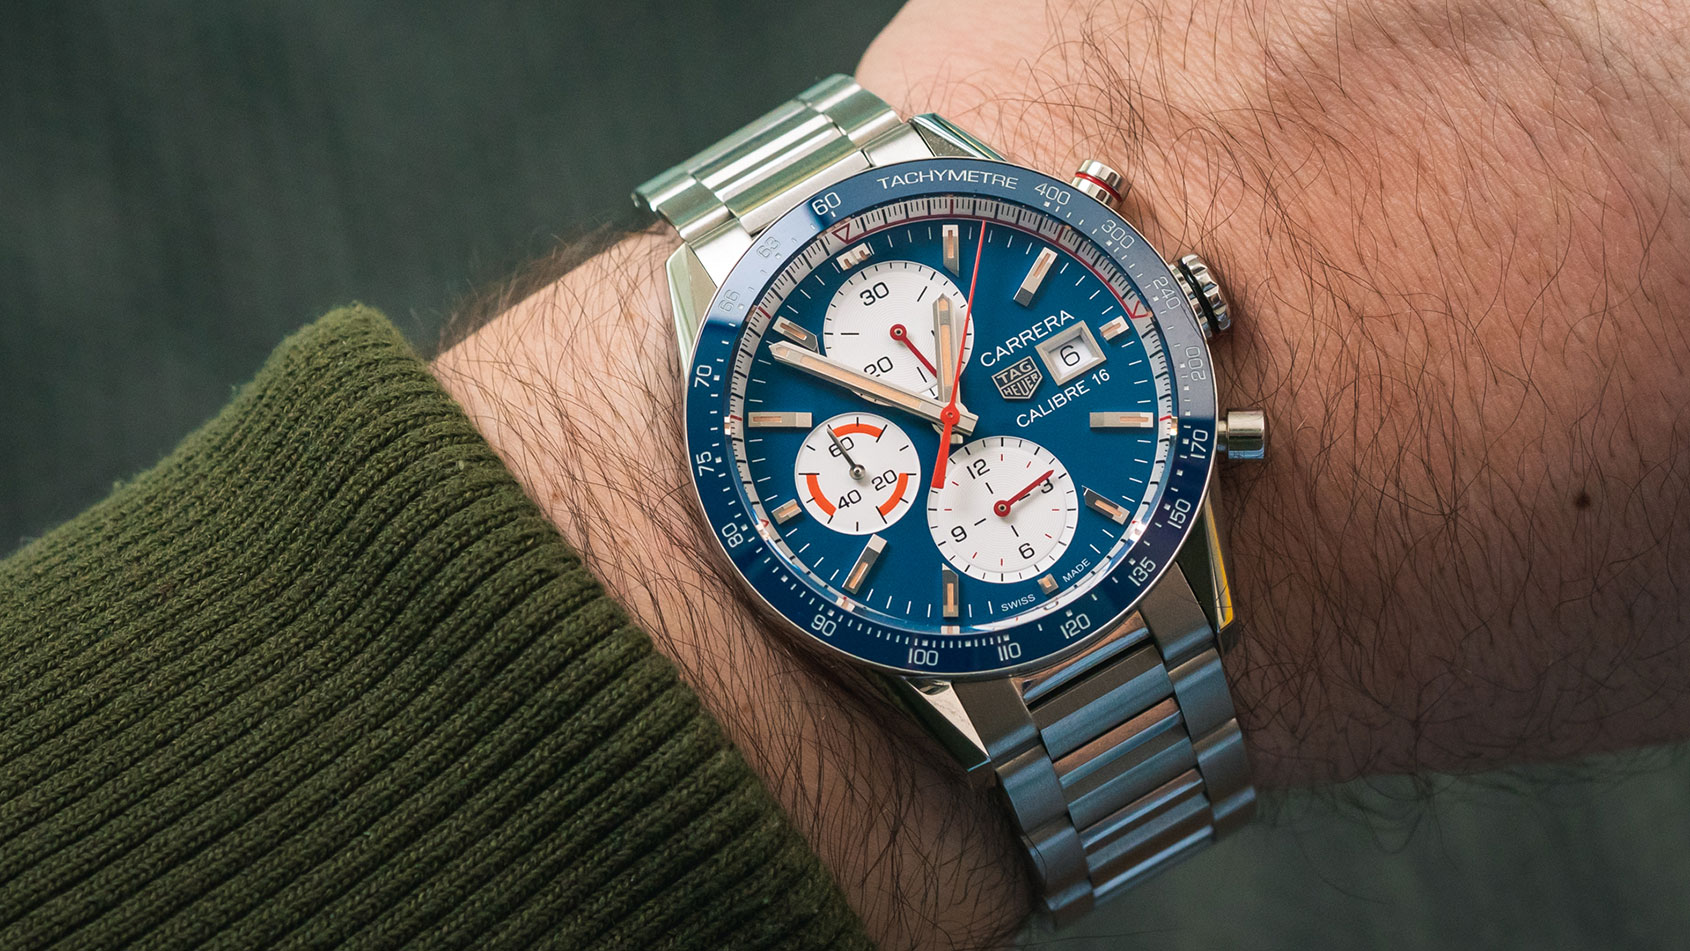 3 TAG Heuer Calibre 16s that can do it all